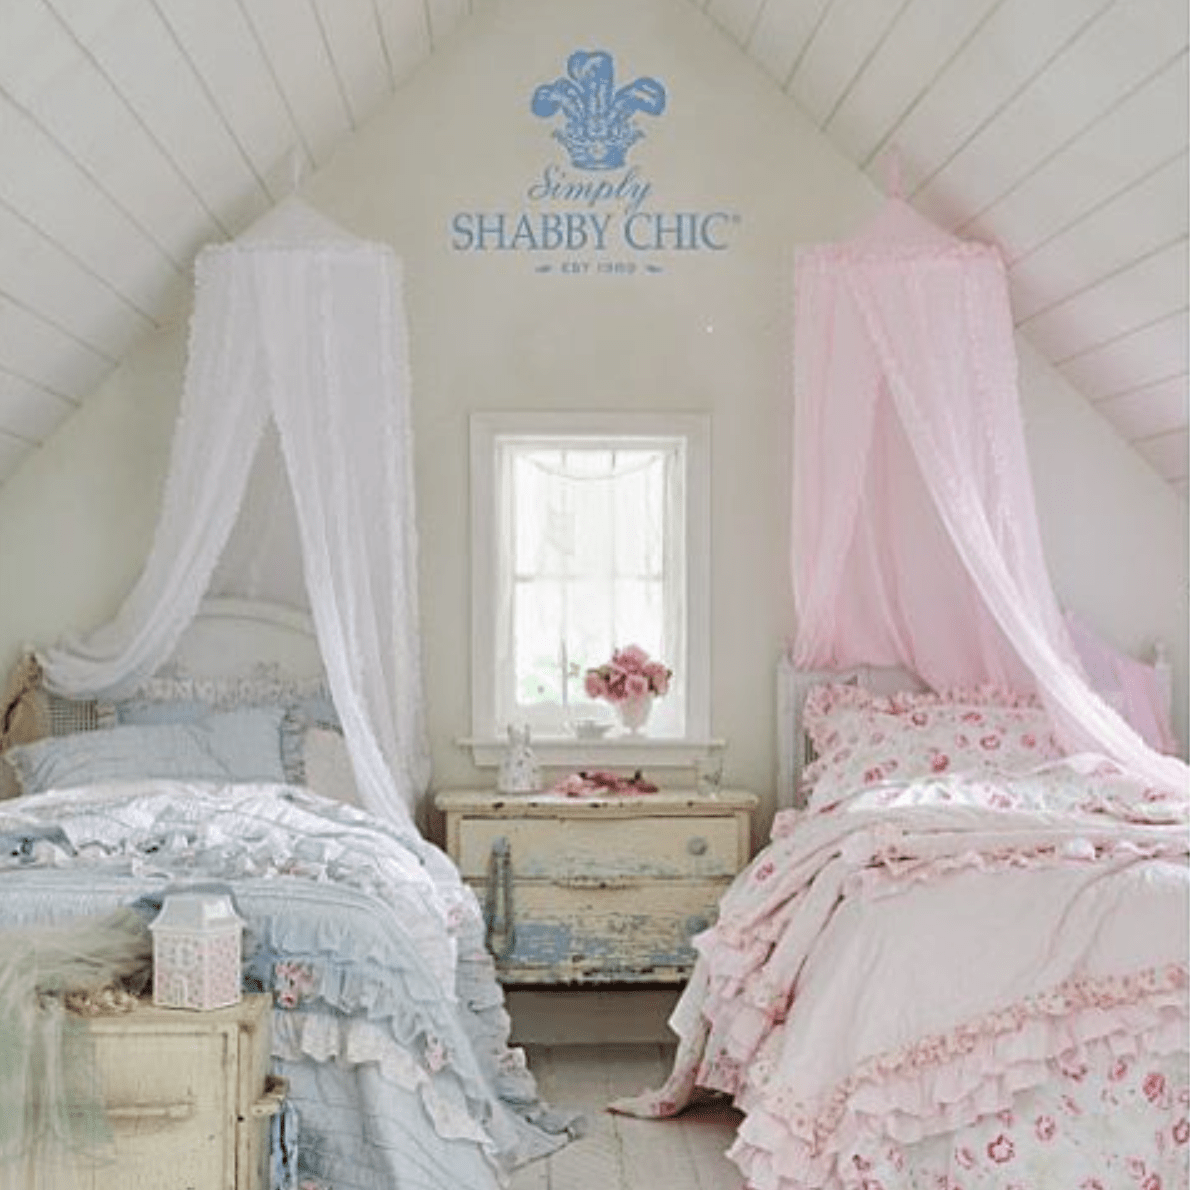 Prettiness for a Princess. Simply Shabby Chic exclusively